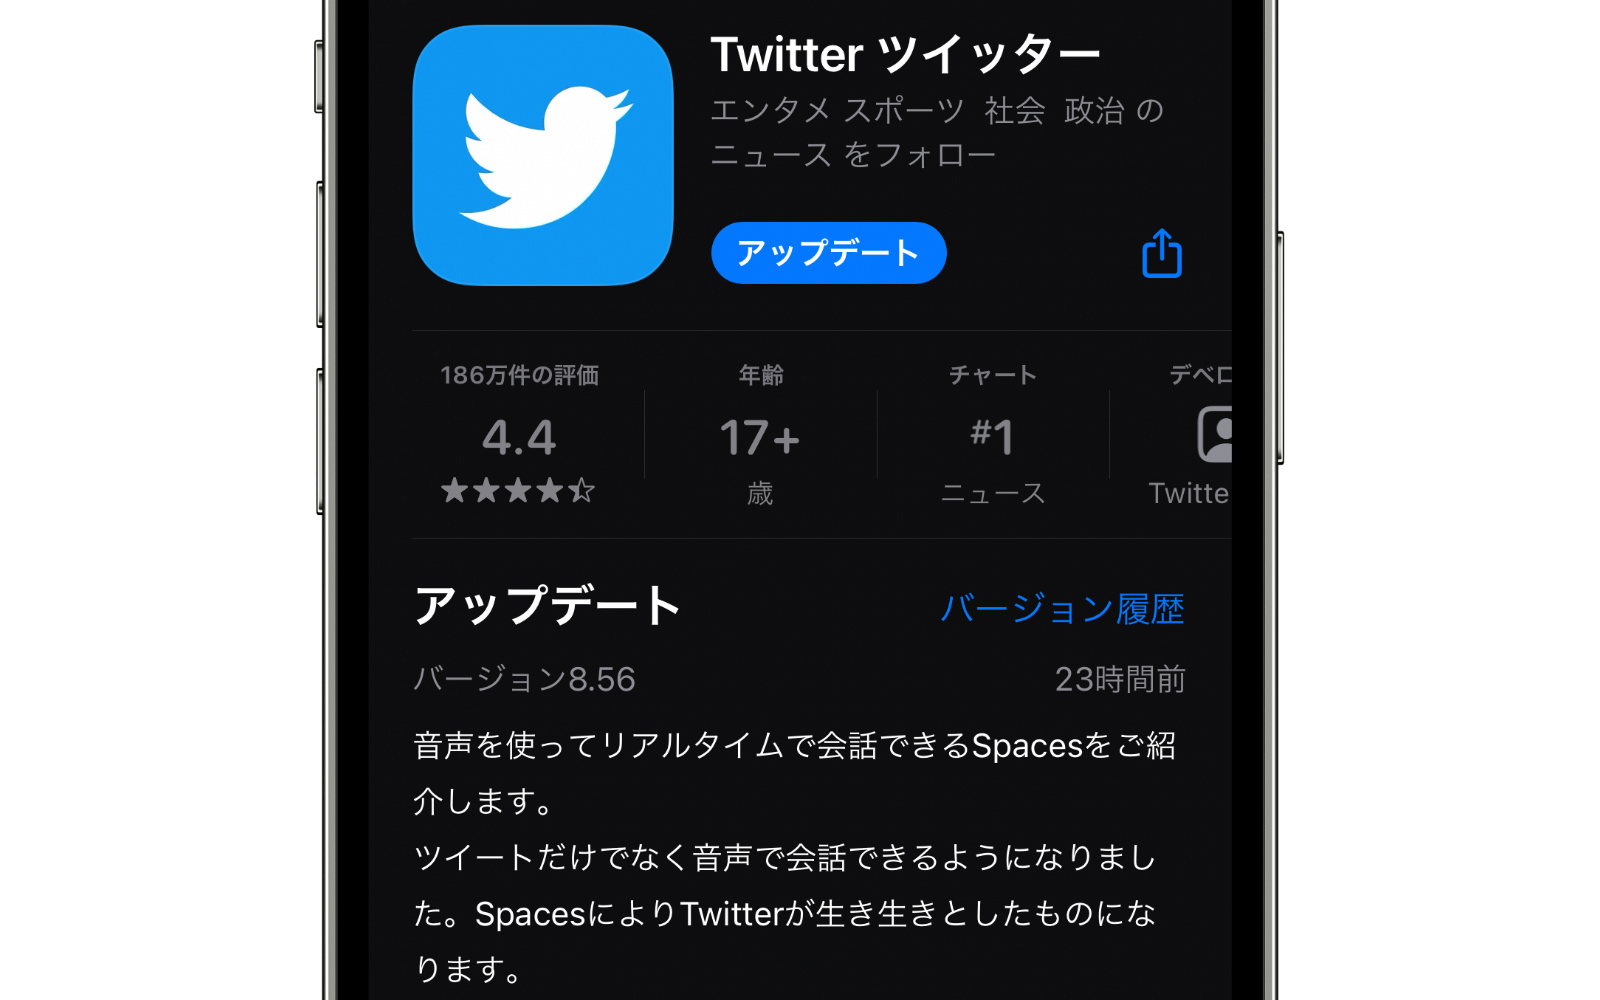 Twitter Spaces Update